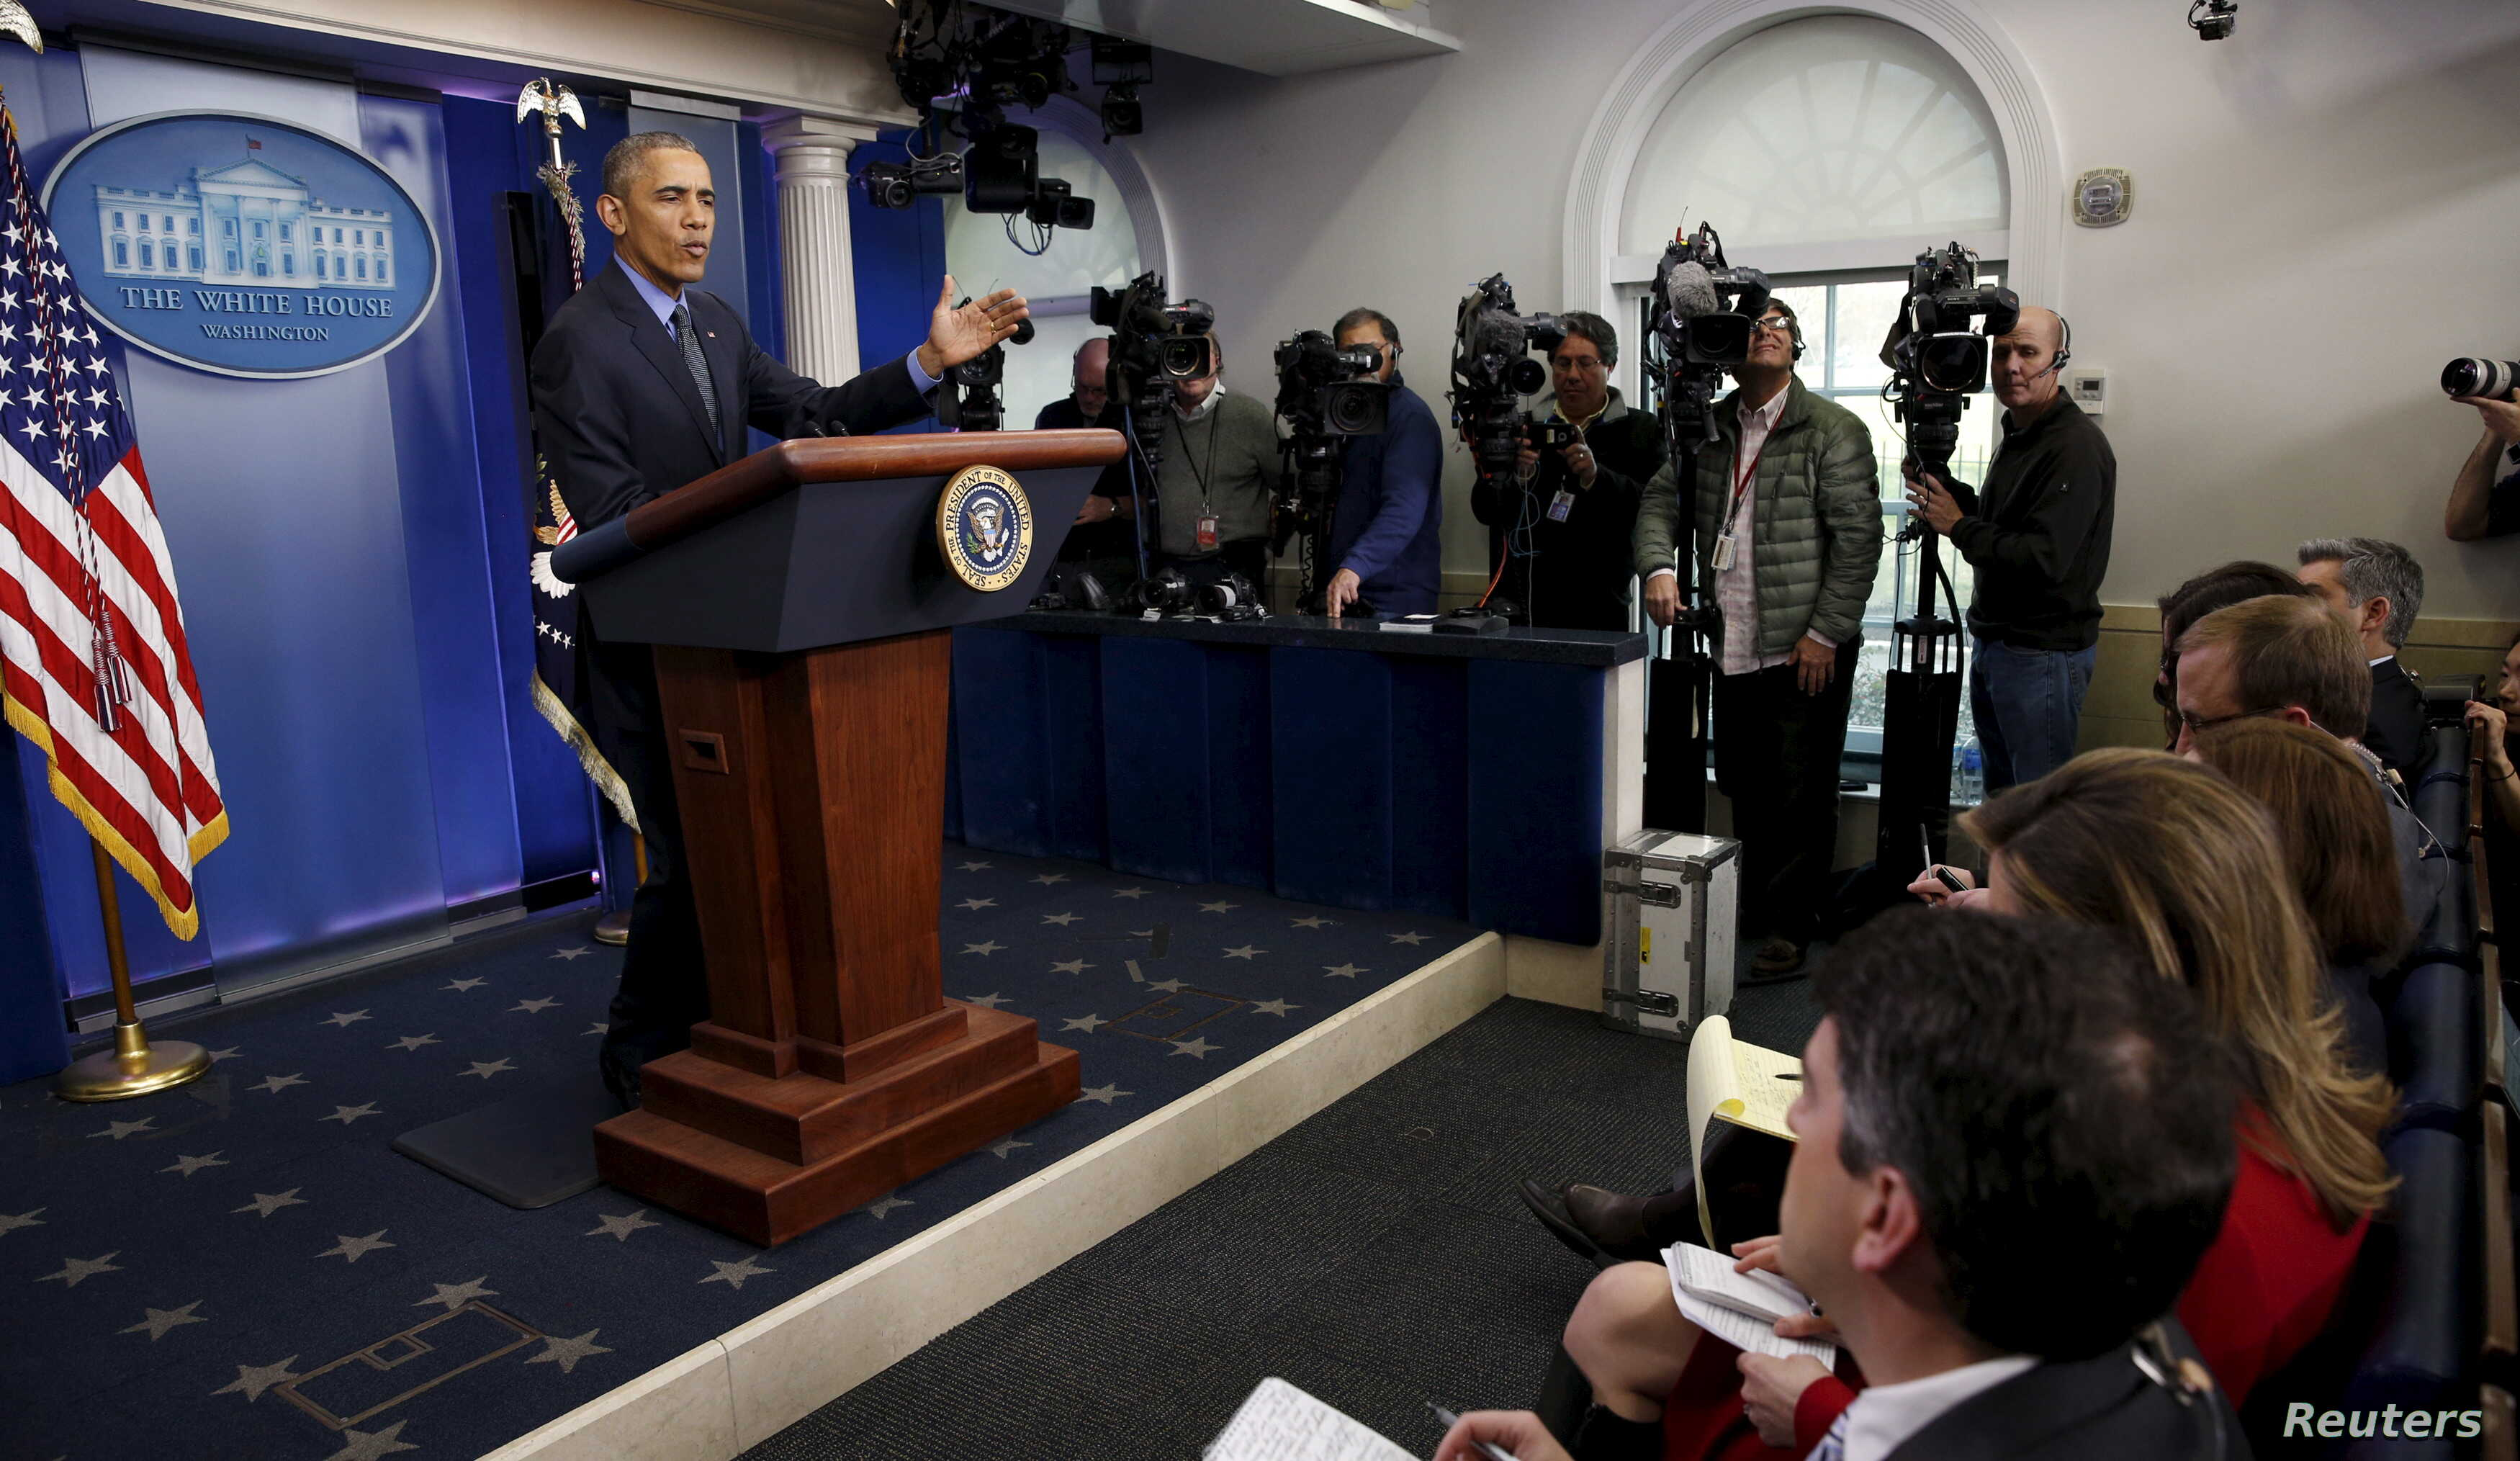 U.S. President Barack Obama holds his end of the year news conference at the White House in Washington, Dec. 18, 2015.